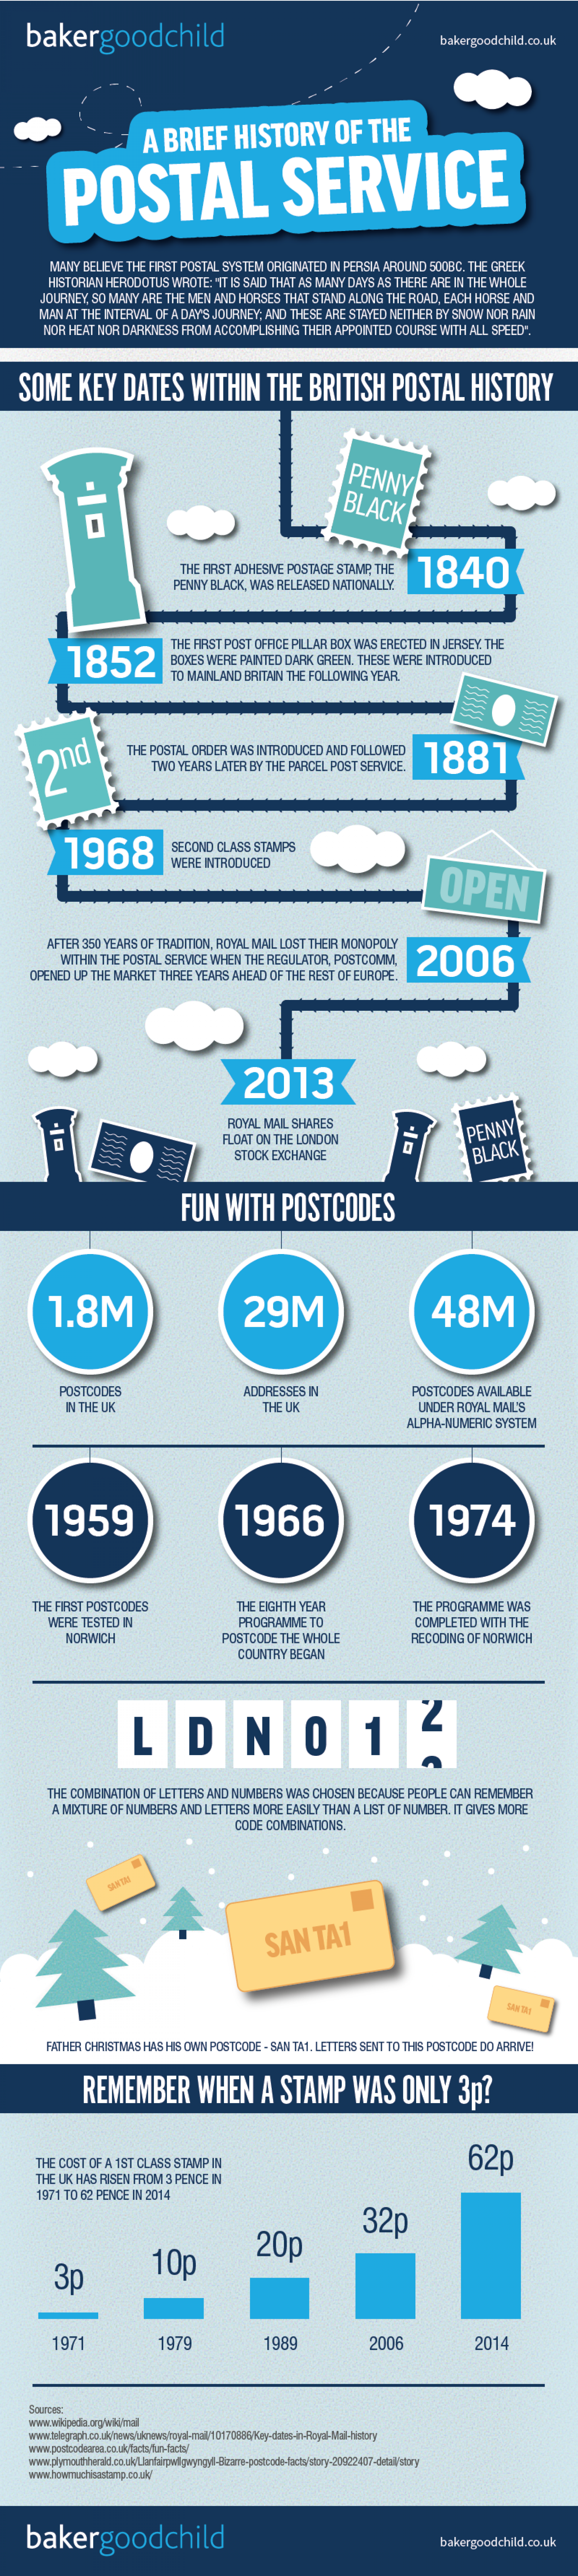 History of the postal service Infographic